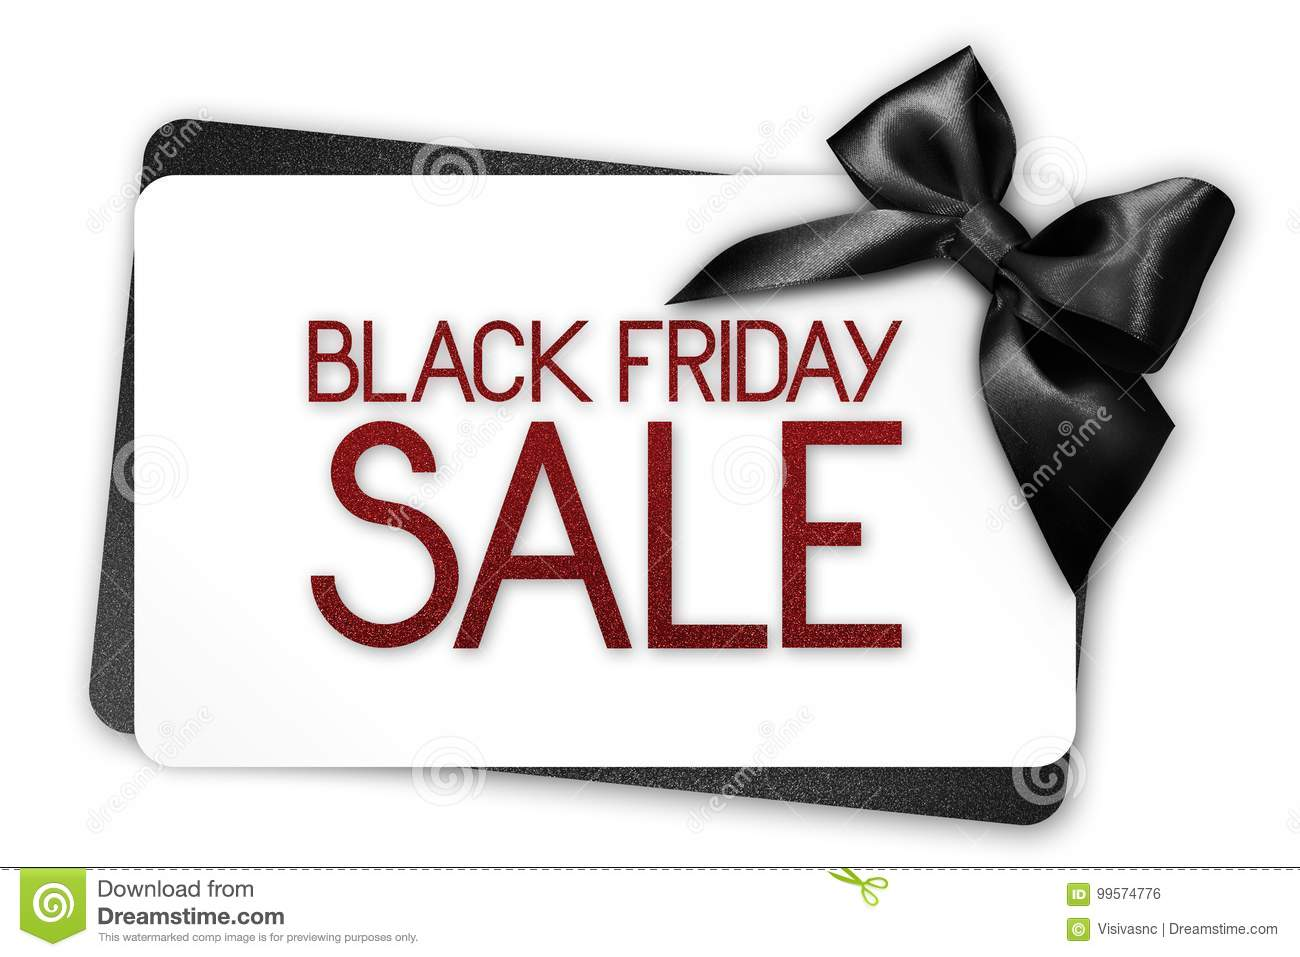 Black Friday sale text write on white gift card with black ribbon bow